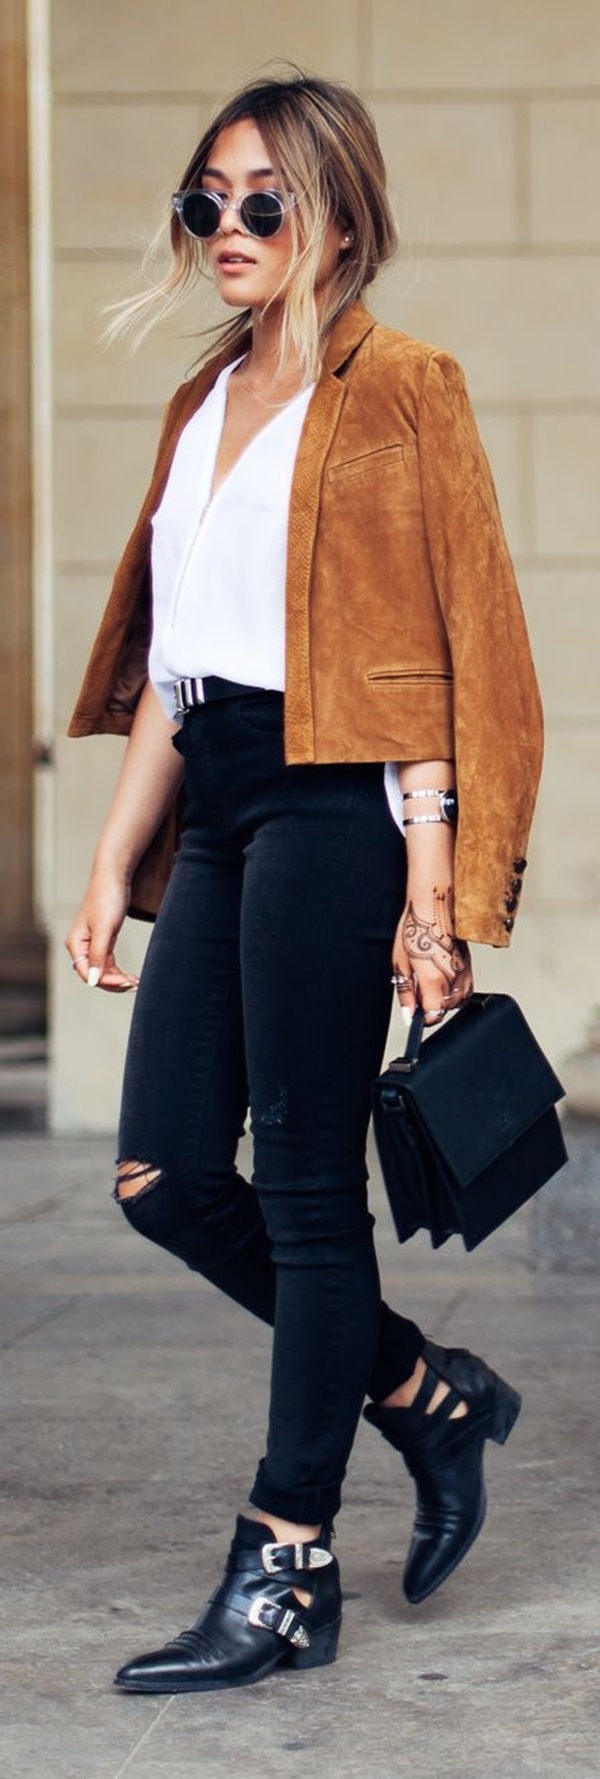 street style fashion ideas (36)